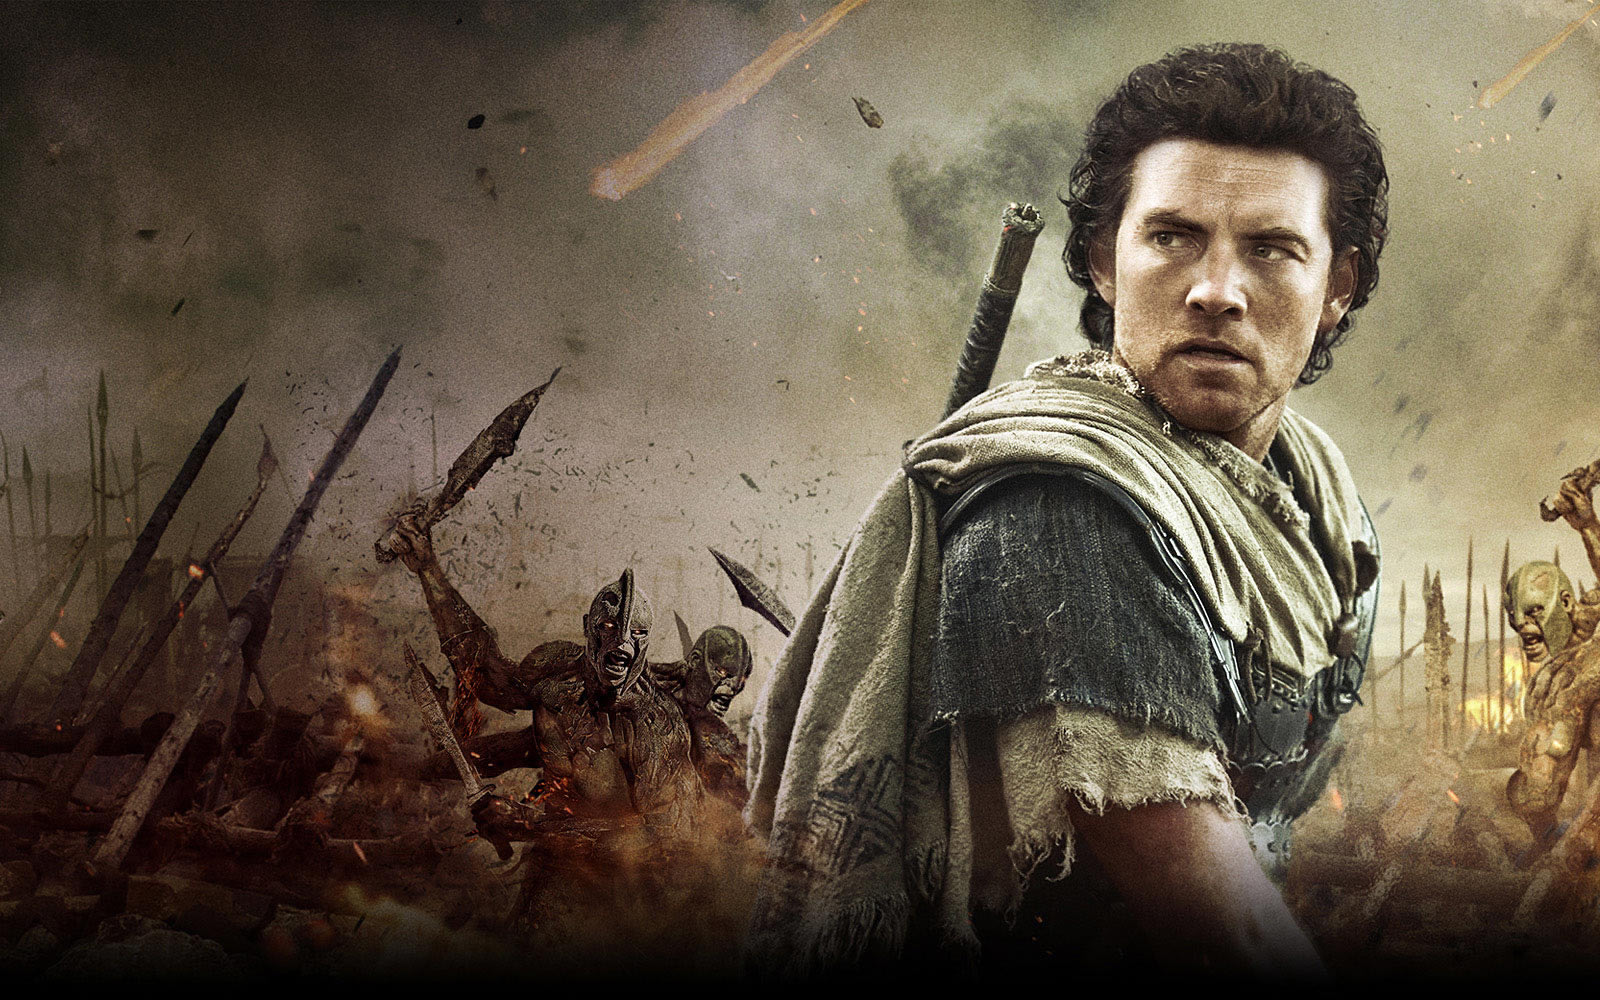 HD: WRATH OF THE TITANS 06 - PERSEUS